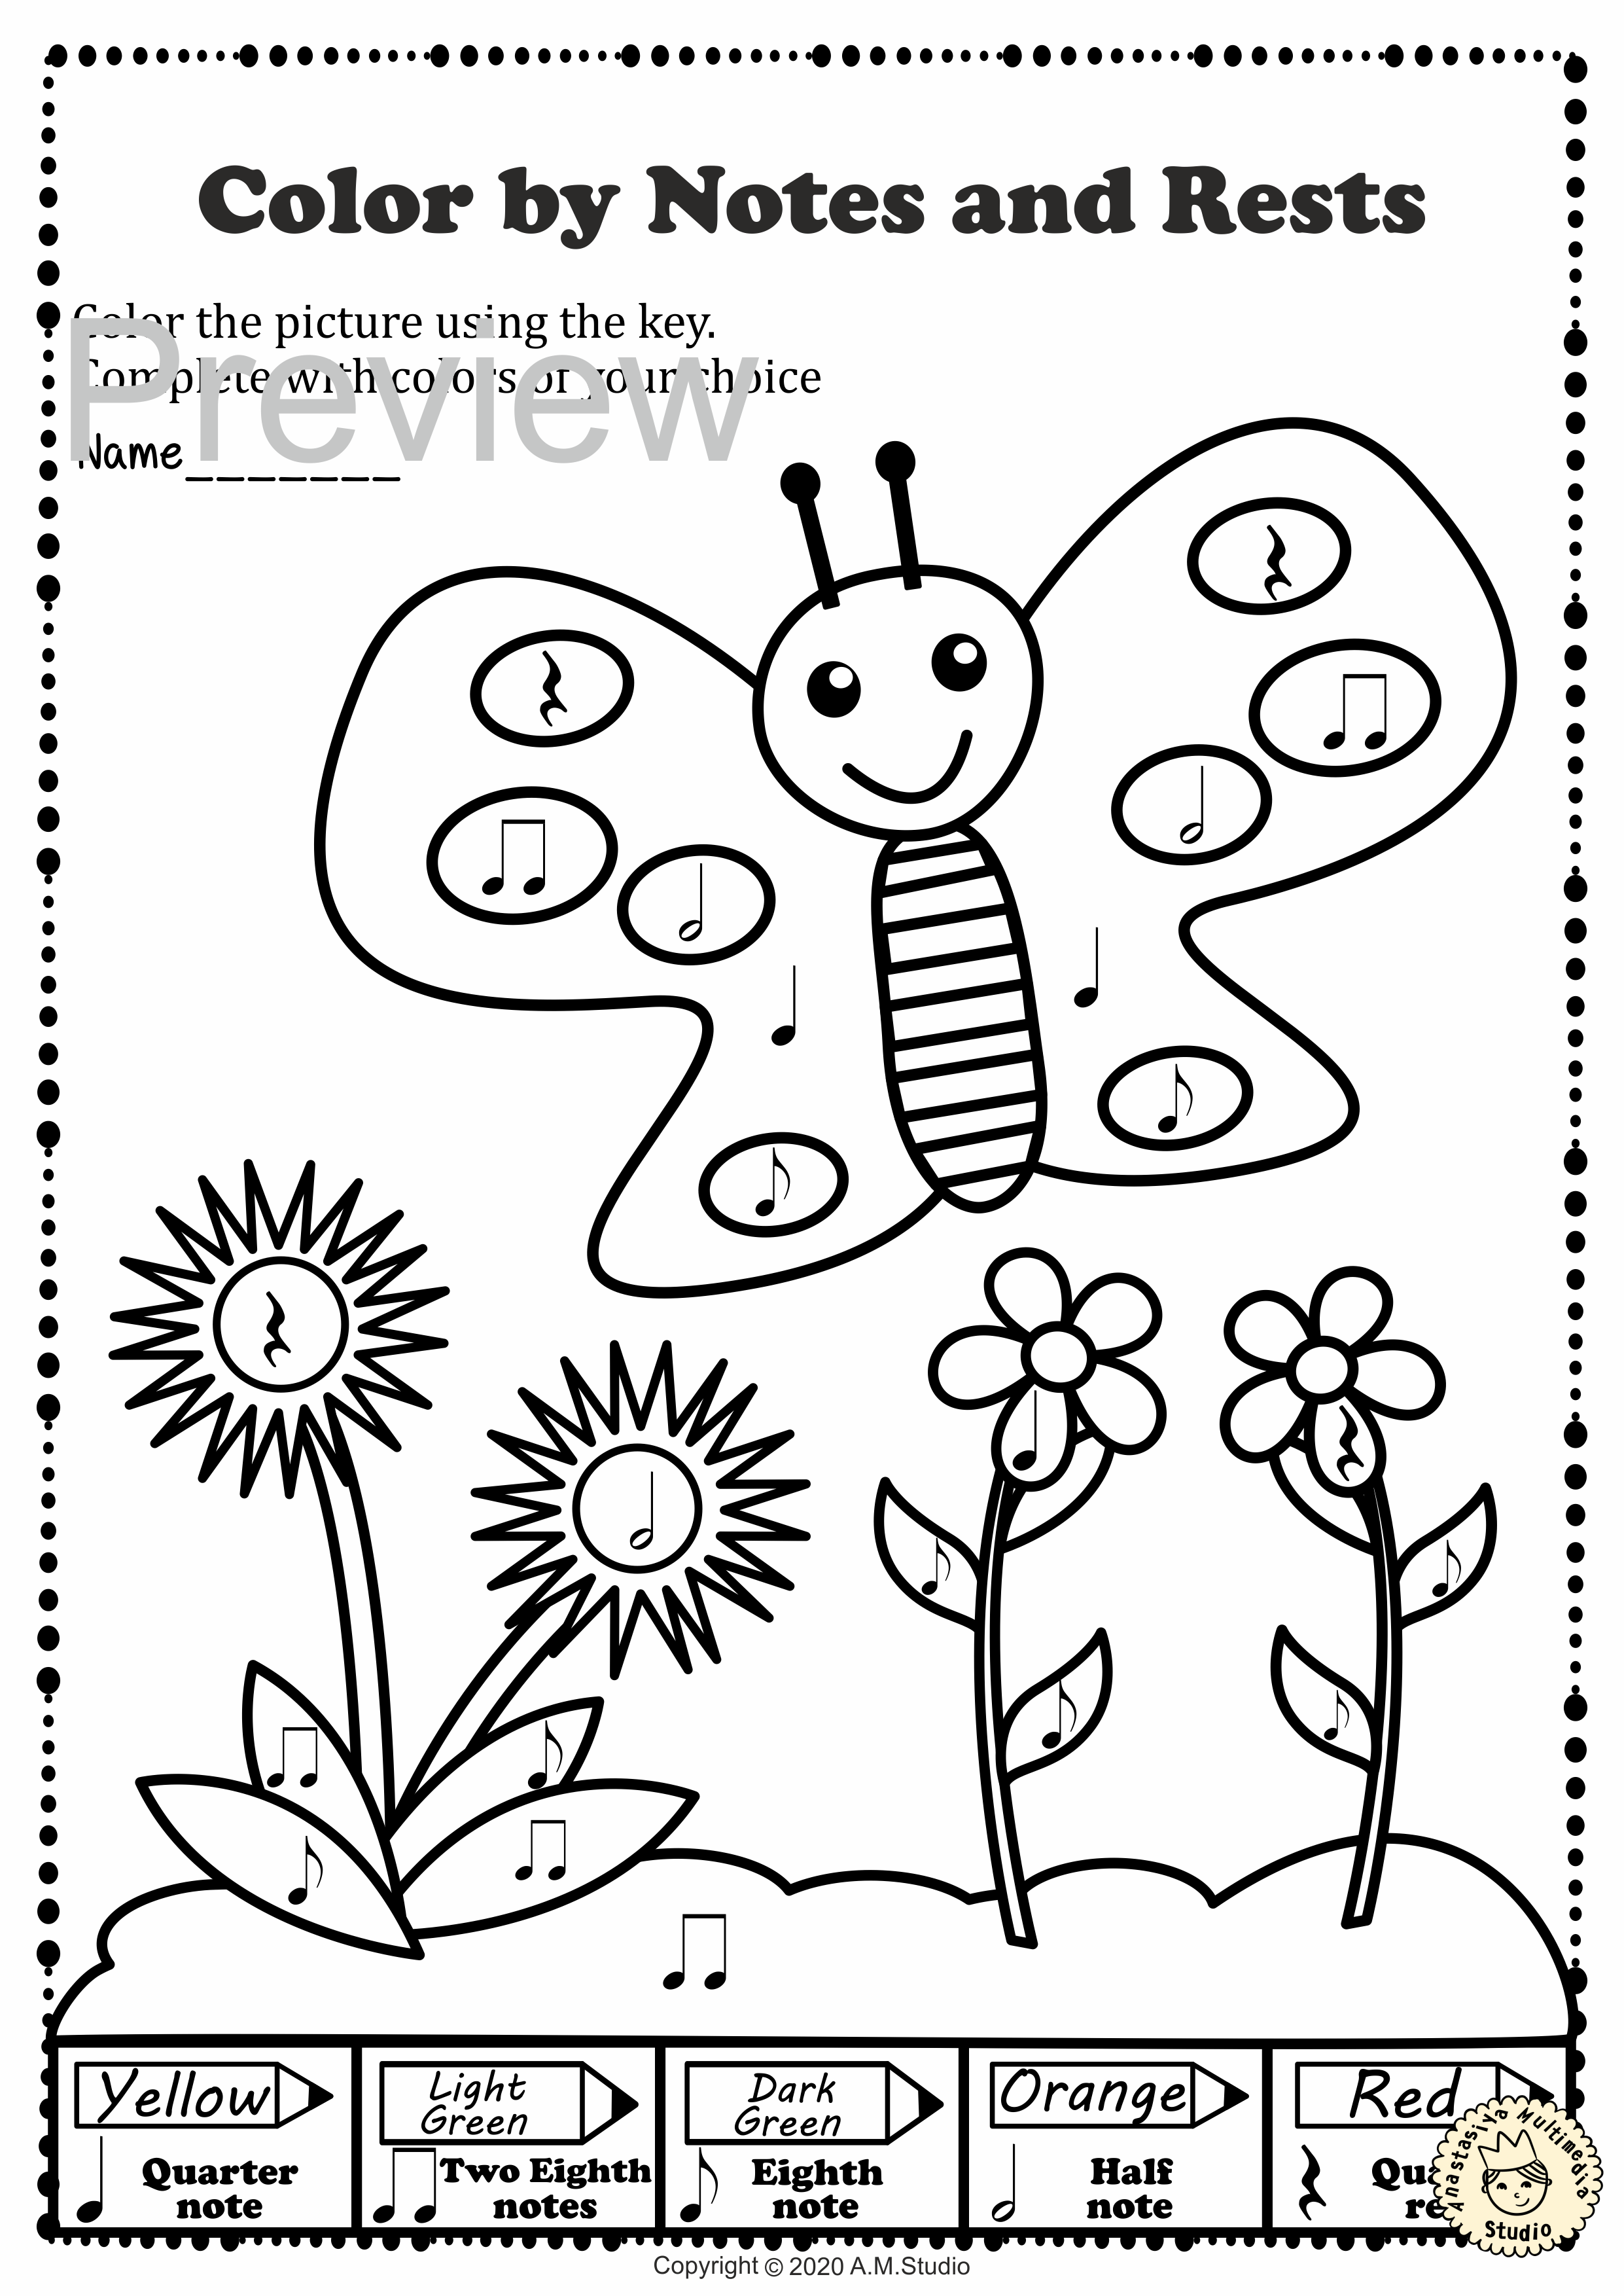 Musical Coloring Pages for Spring Color by Notes and Rests with